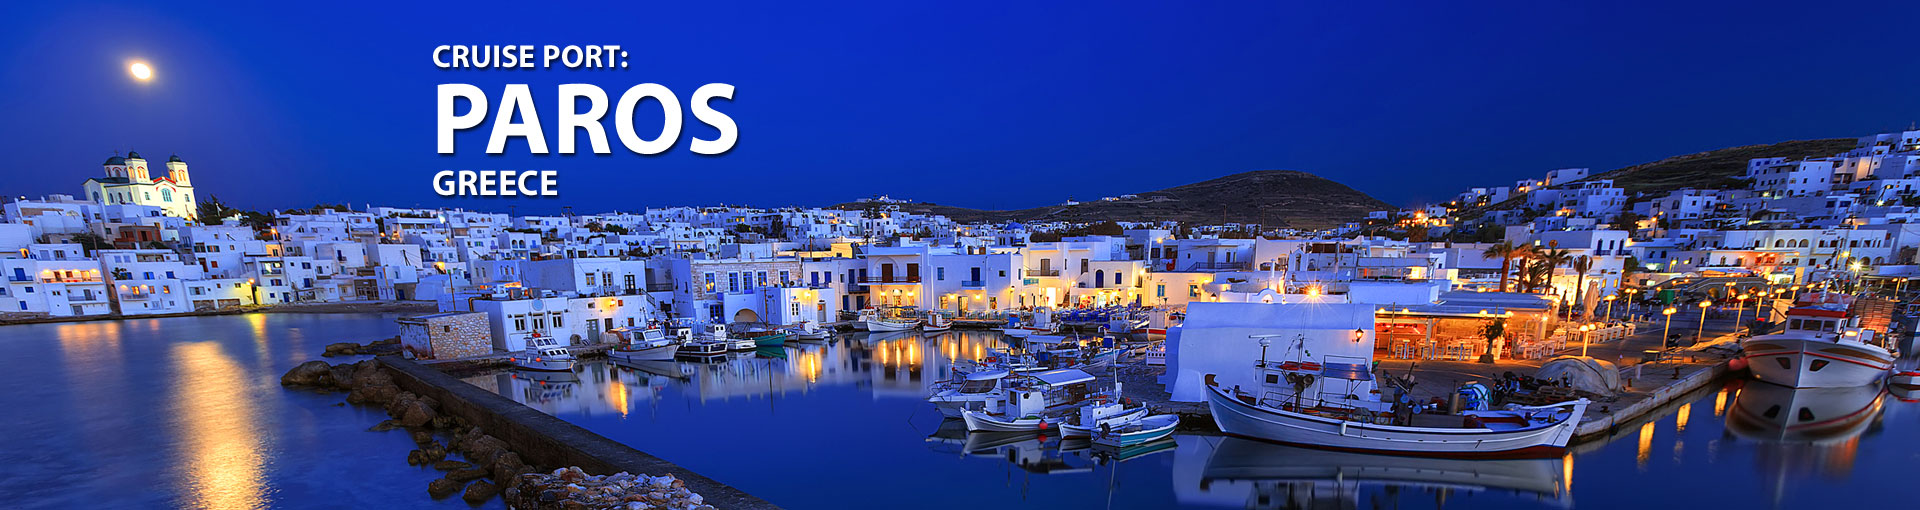 Cruises to Paros, Greece